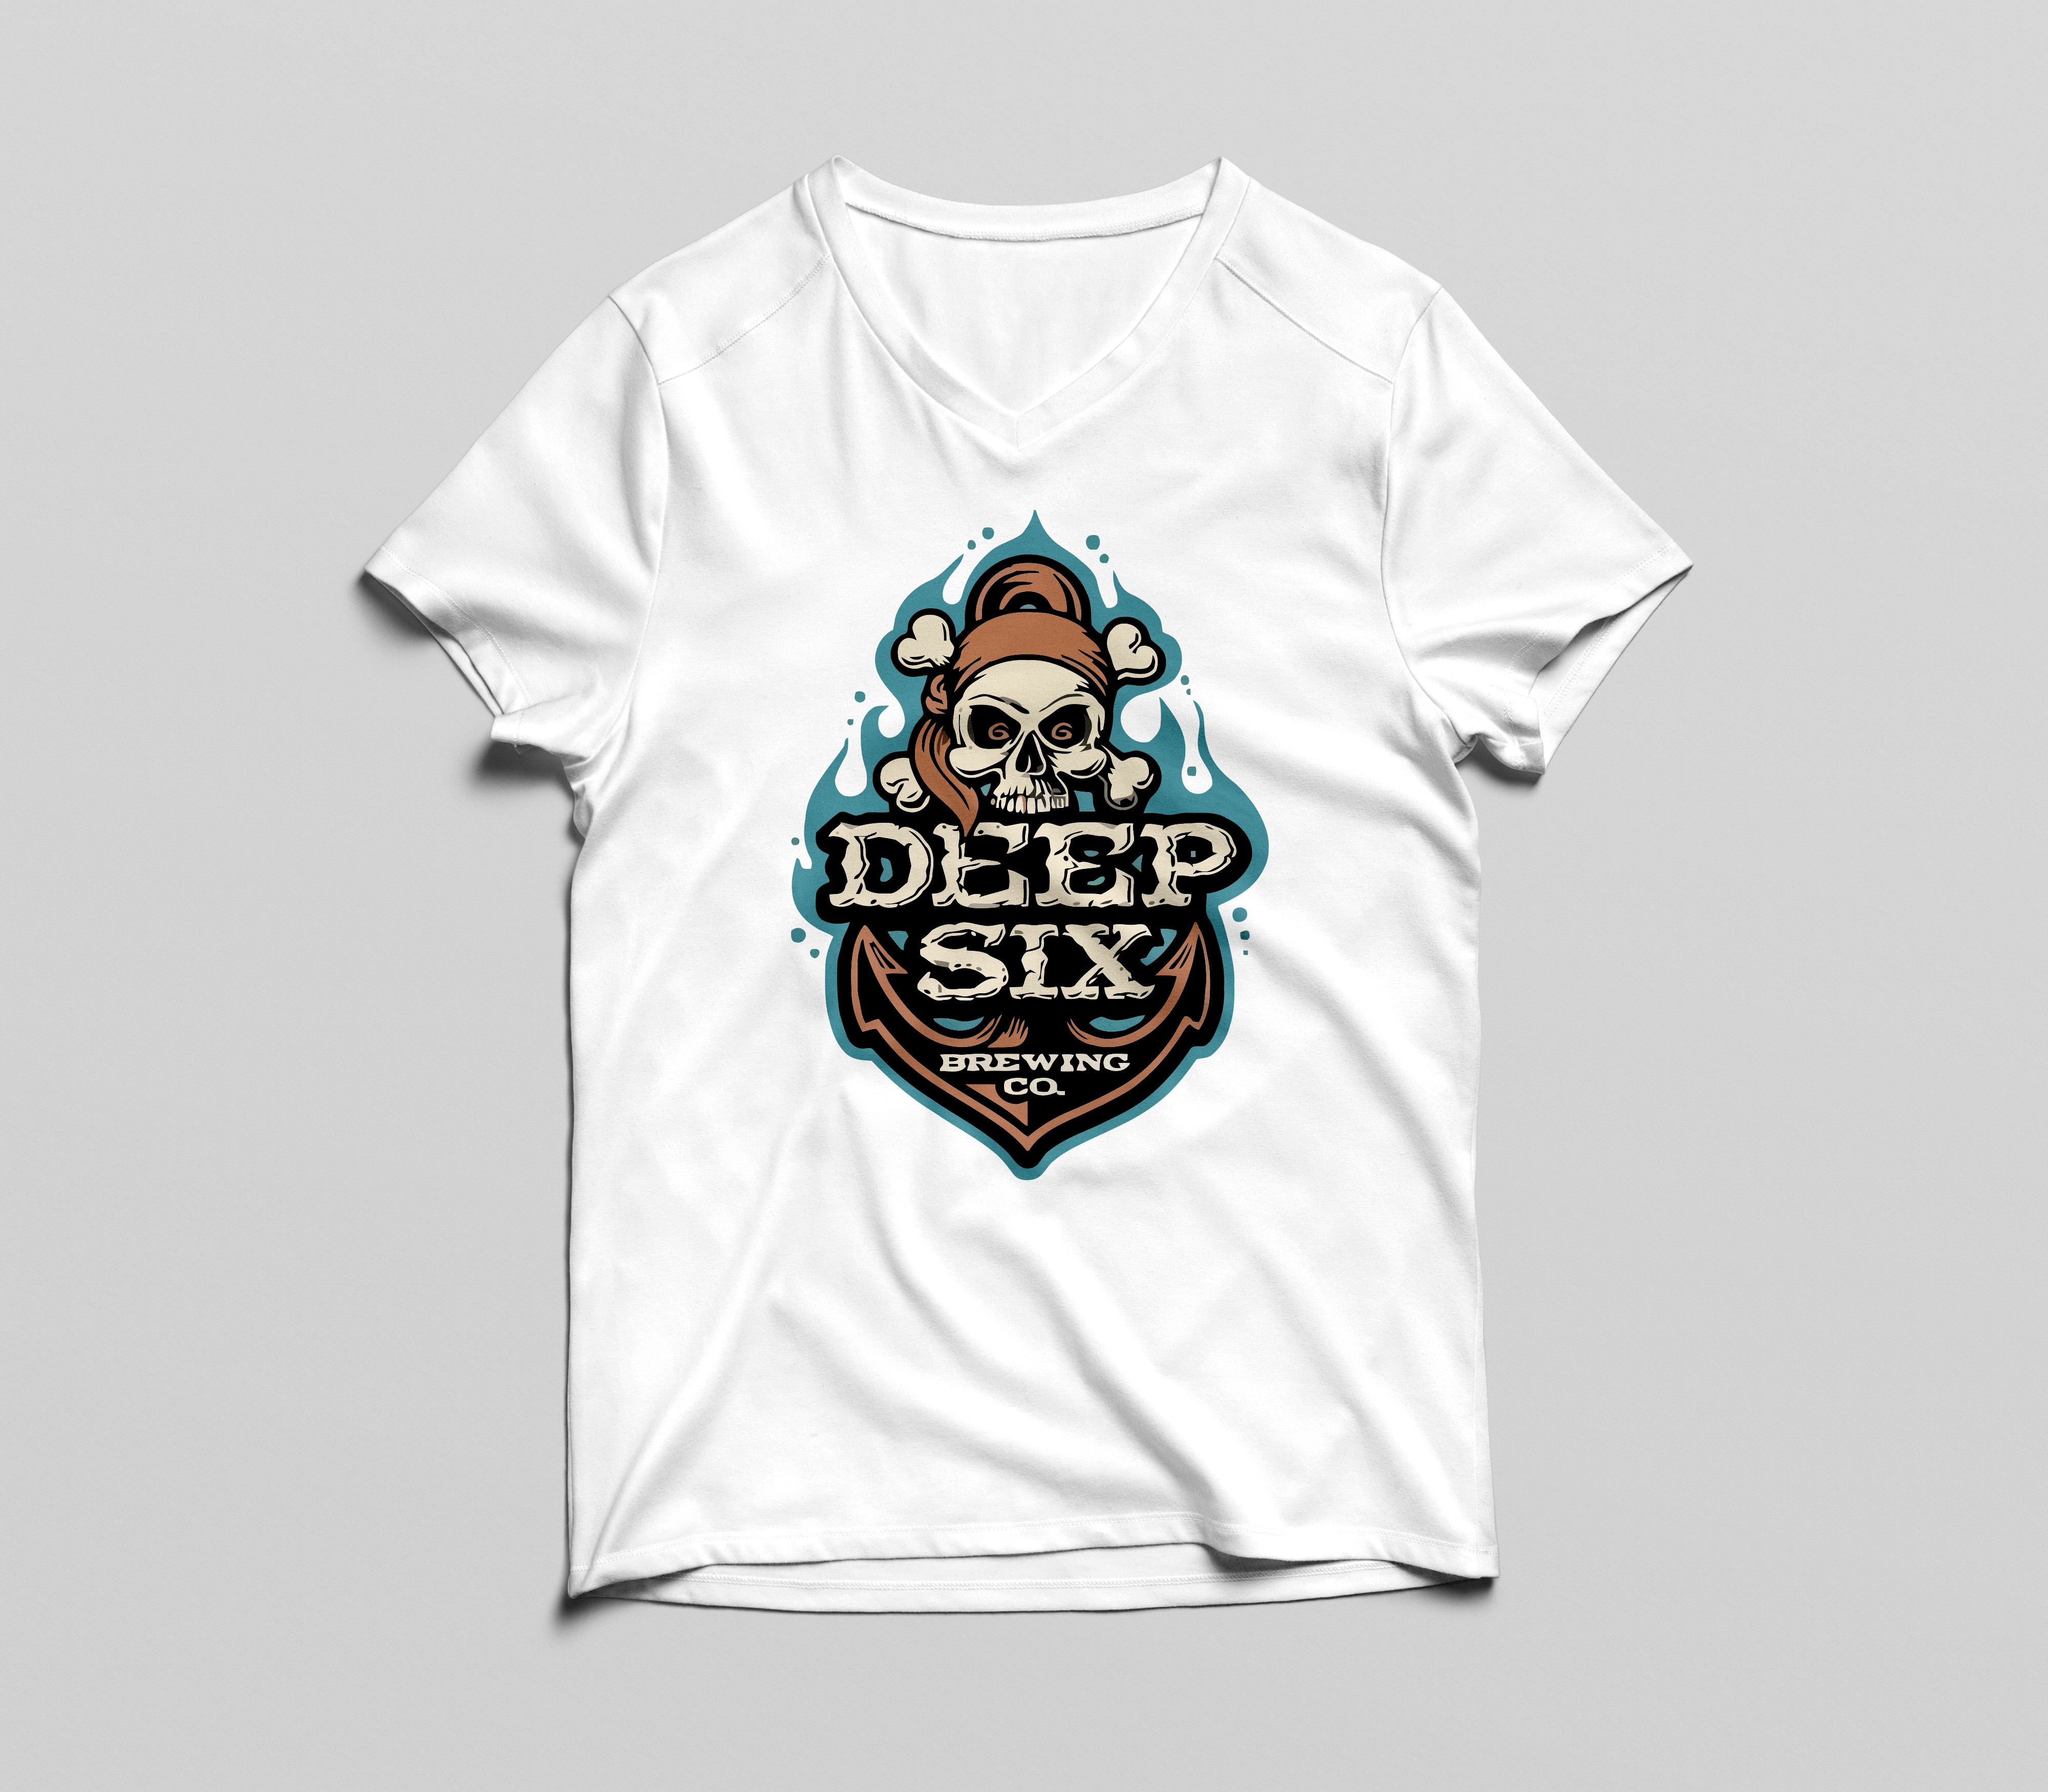 Amazing Custom t shirt design for you